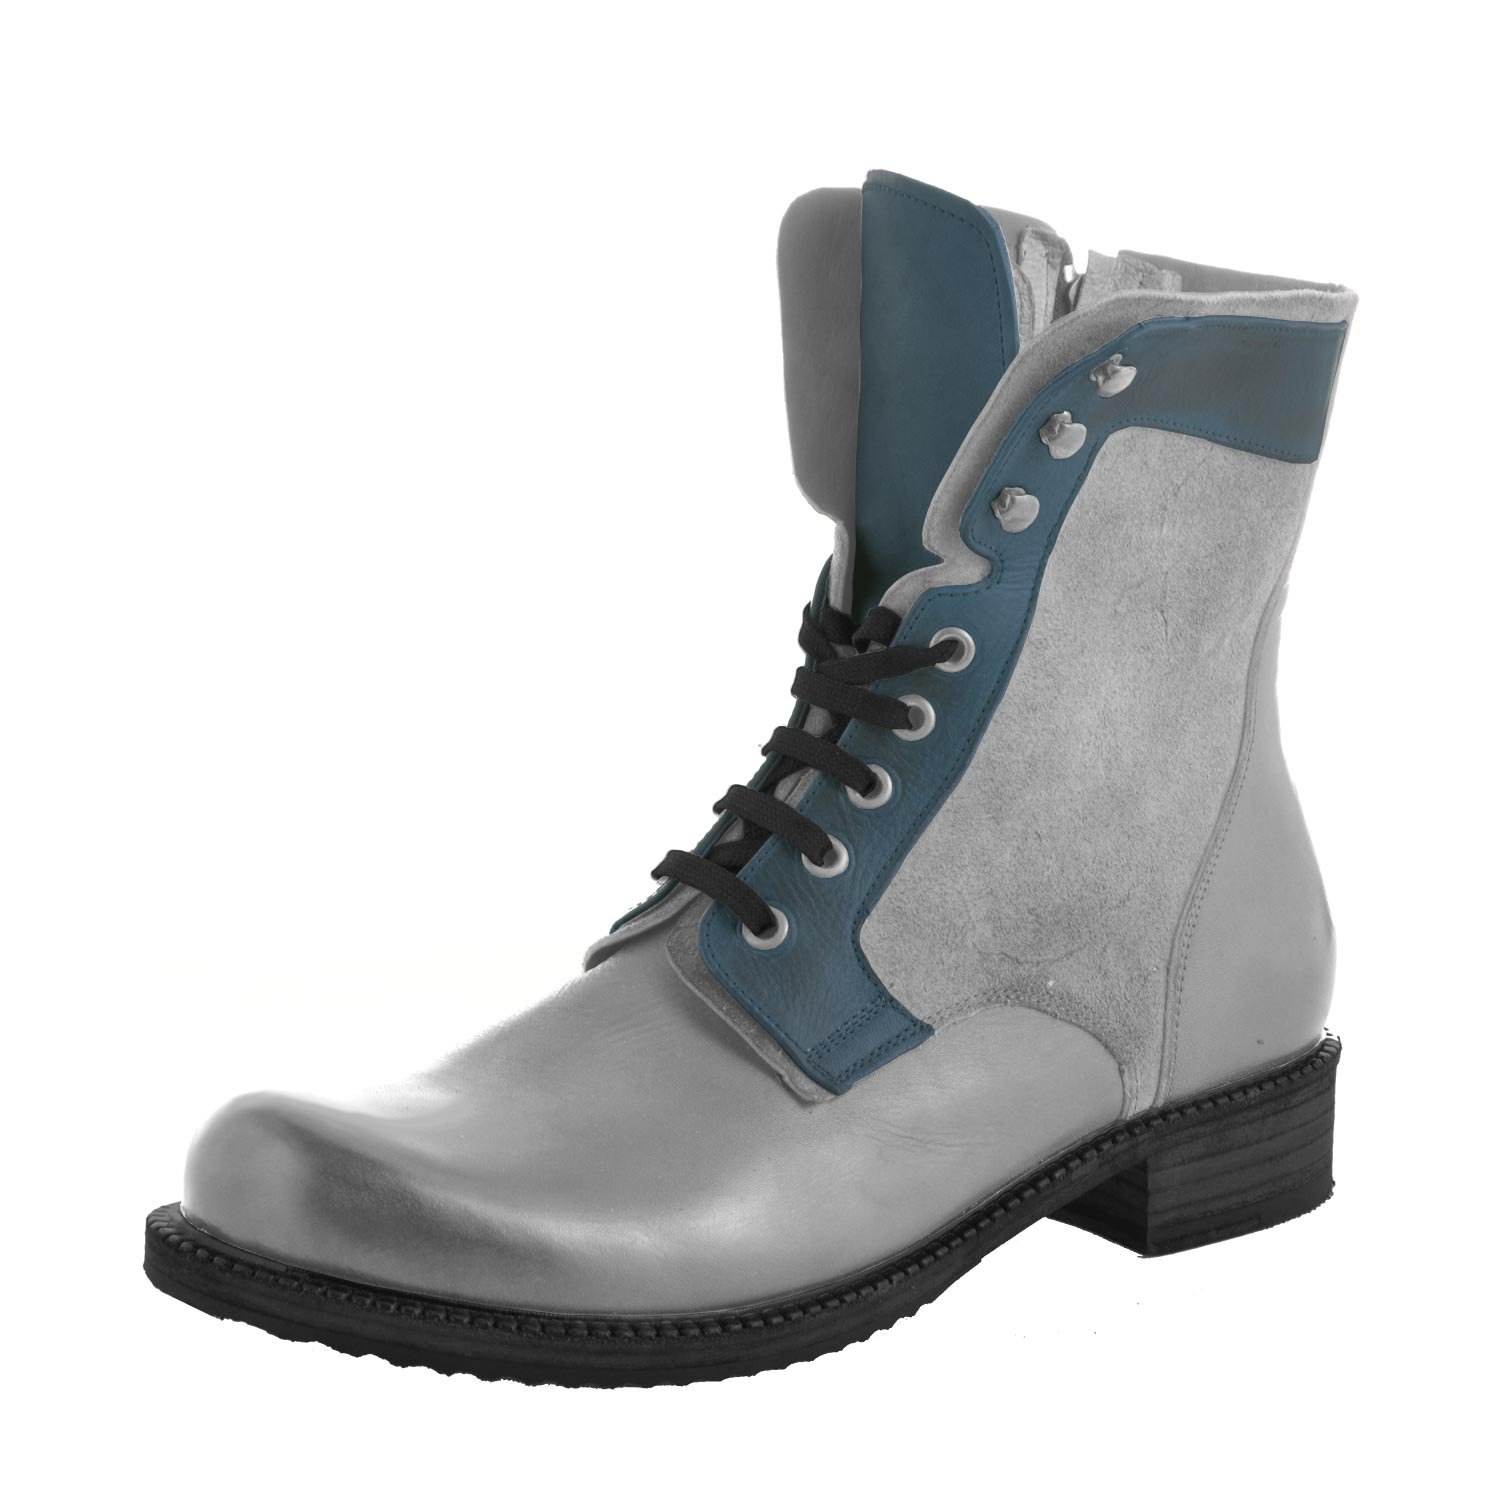 Genuine Leather and Suede High Top Men's Boots Gray/Navy - Badlands By Kristoff